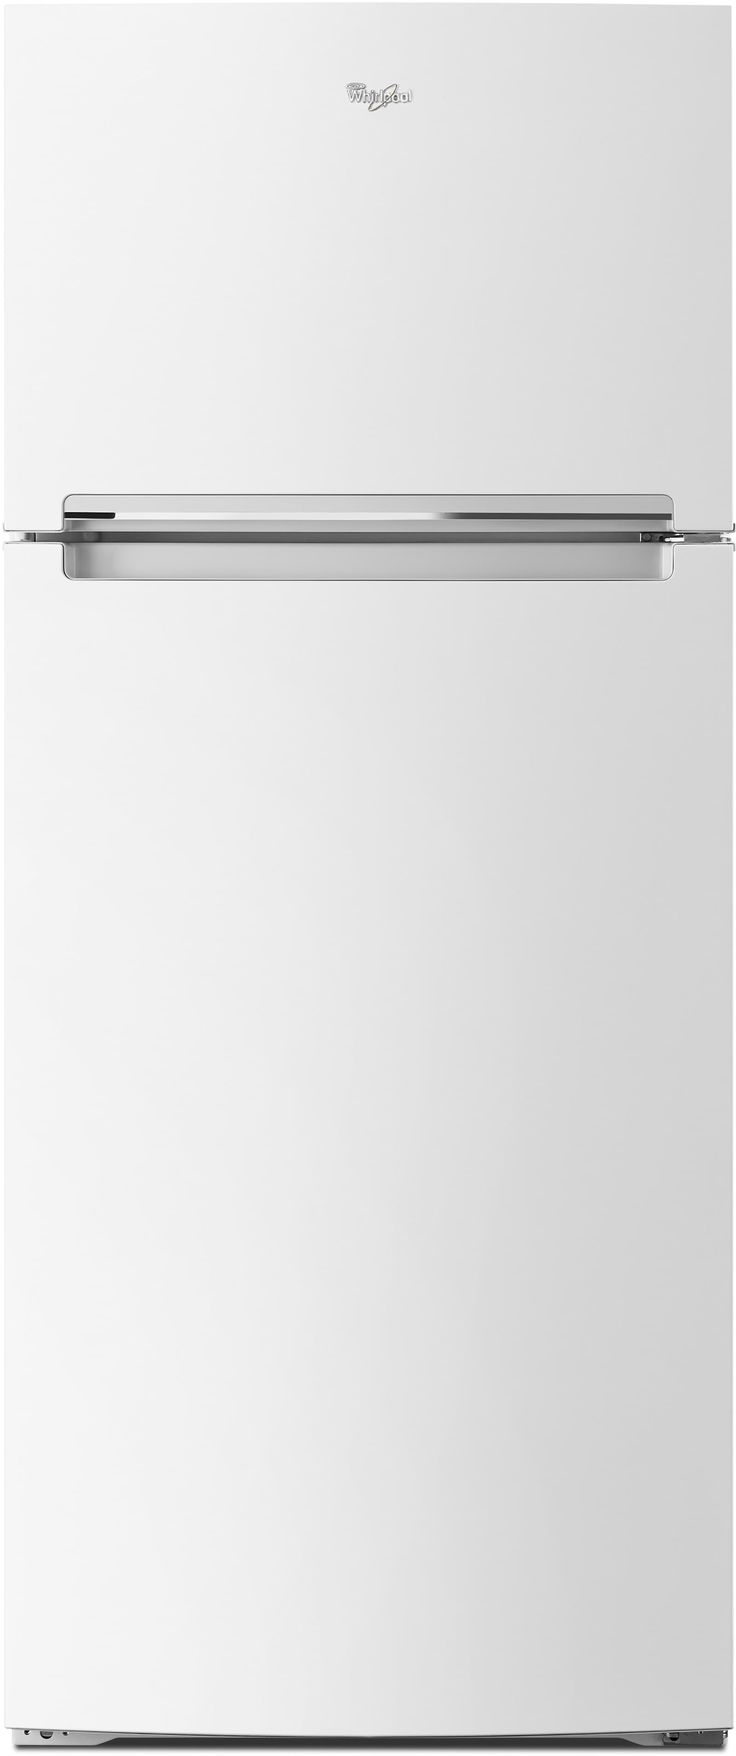 Whirlpool WRT518SZFW 28 Inch Top-Freezer Refrigerator with Pocket Handles, Flexi-Slide Bin, Gallon Door Storage, 17.6 cu. ft. Interior, Frameless Glass Shelving, 2 Humidity Controlled Crisper Drawers and Electronic Temperature Controls: White